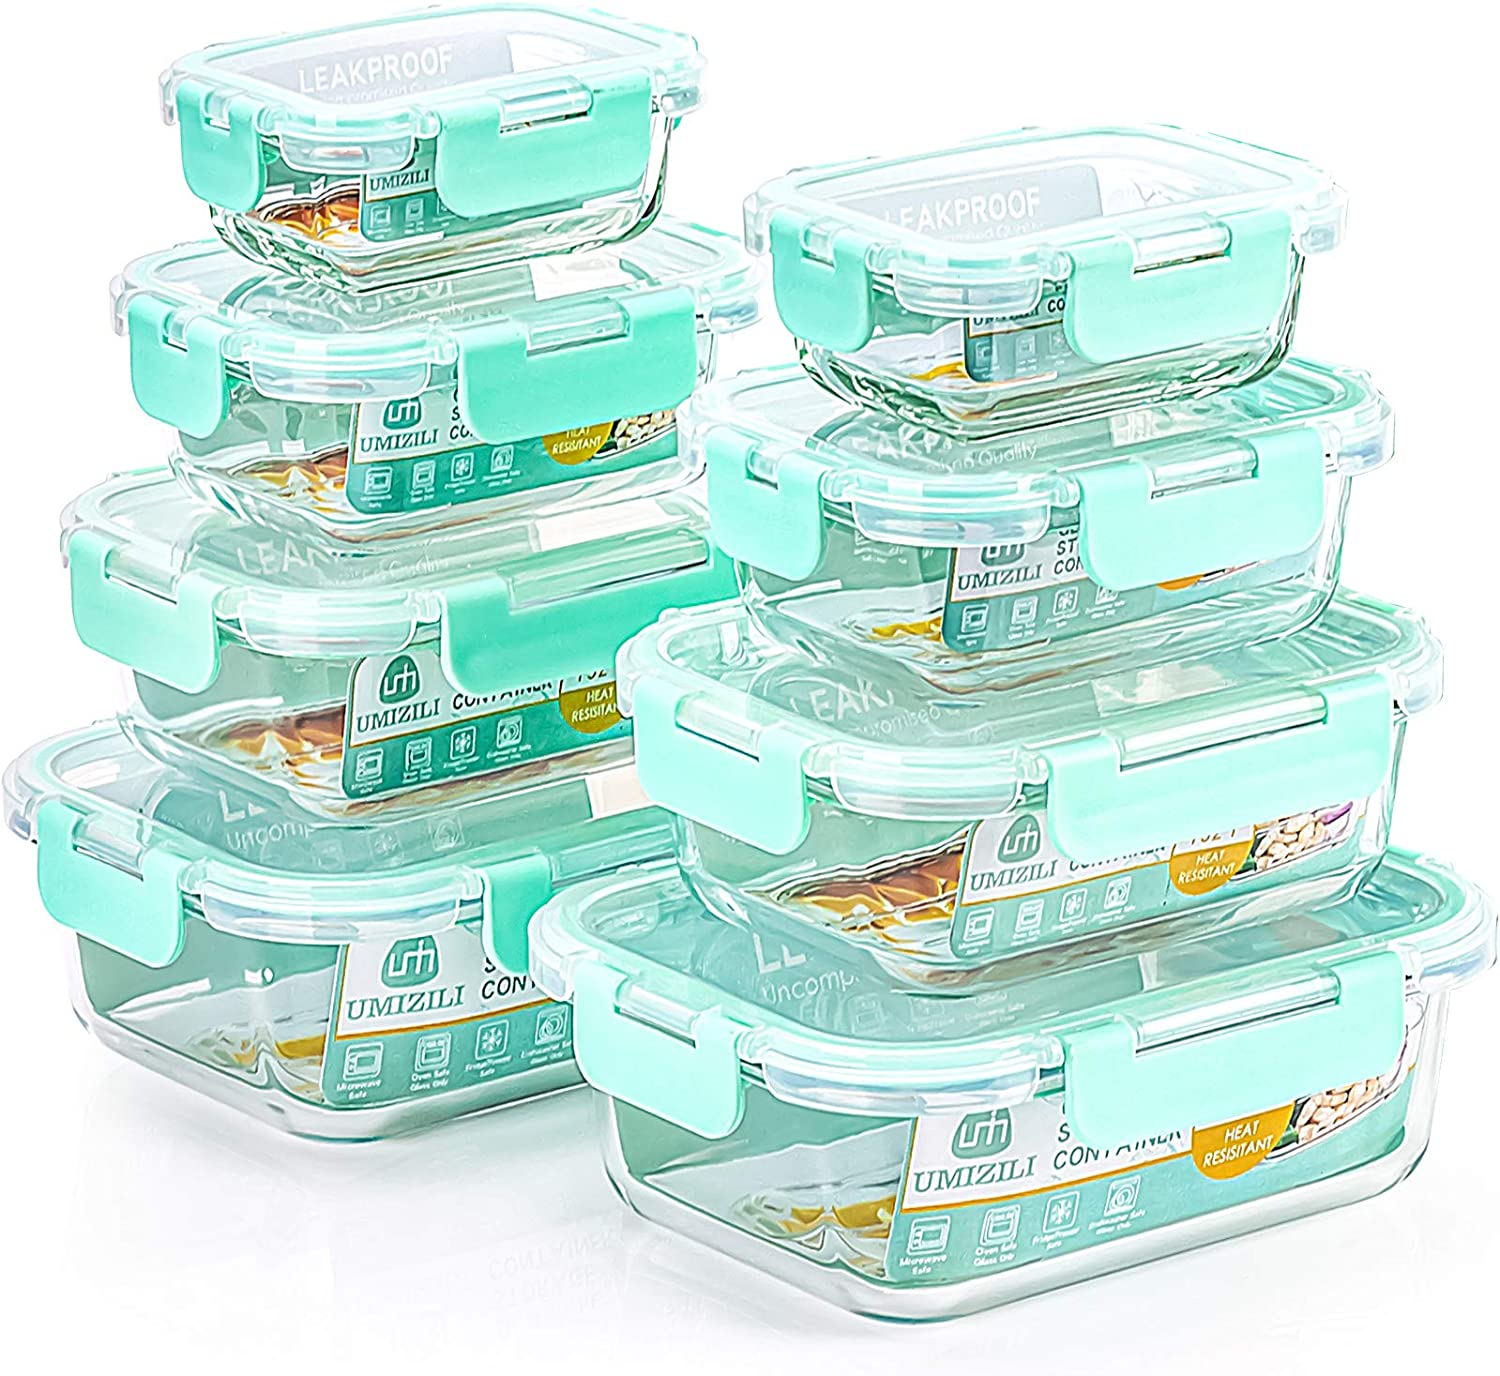 16 Piece Glass Storage Containers with Lids, Airtight Food Storage Containers with Lids for Meal Prep, Freezer to Microwave, Dishwasher Safe (8 Containers + 8 Lids)